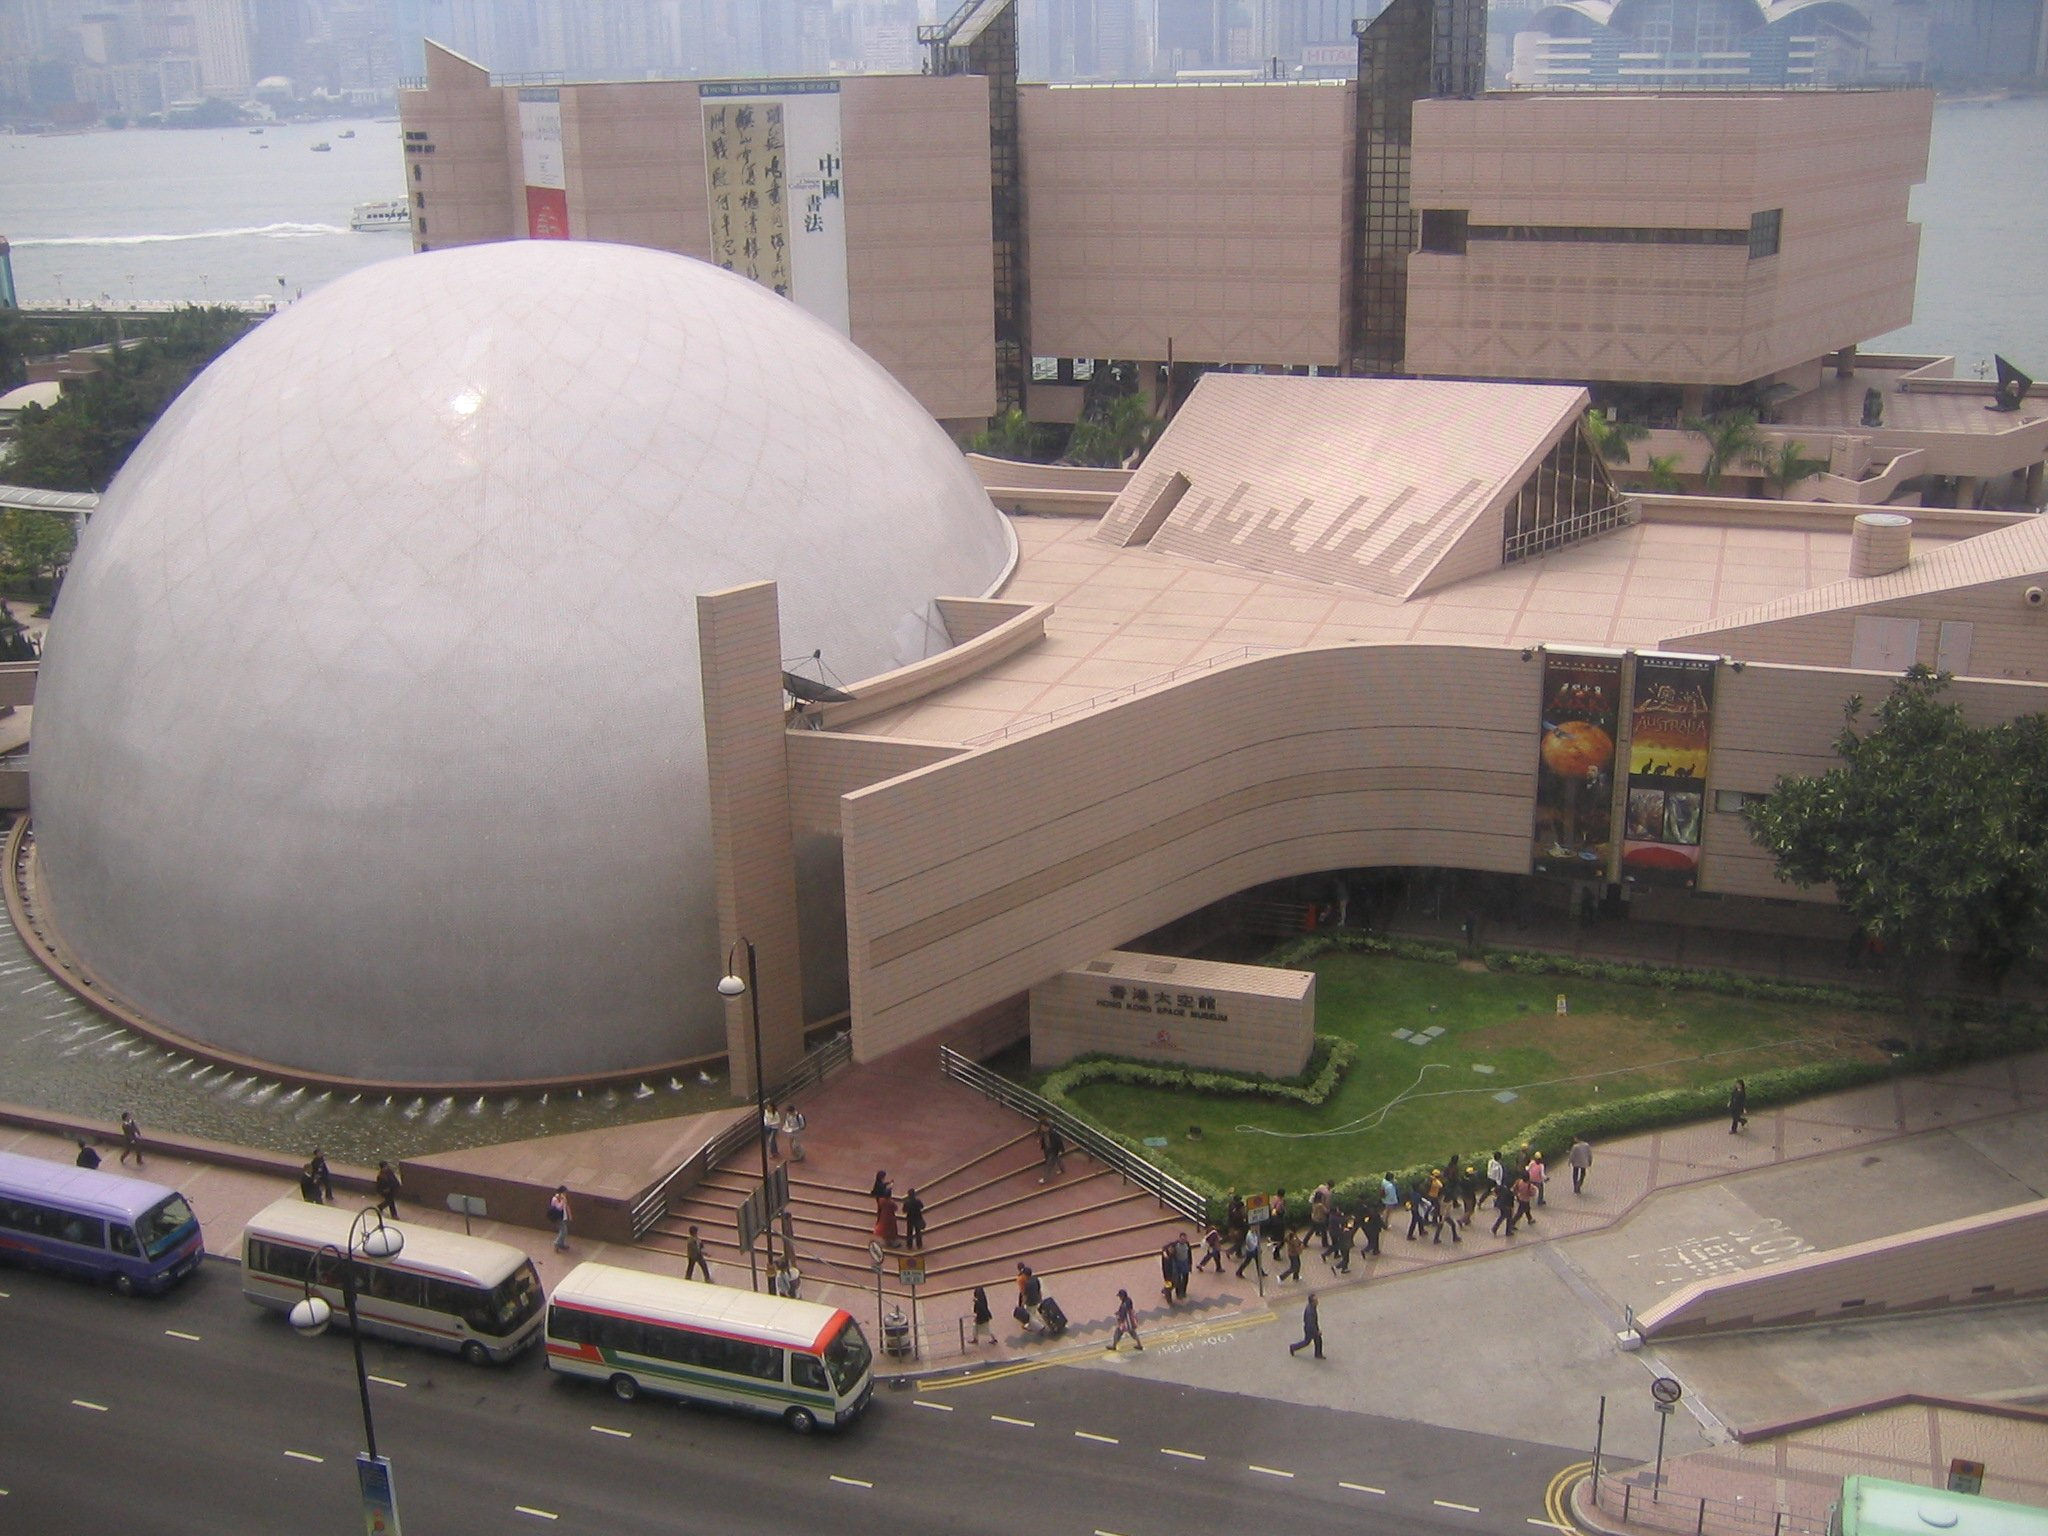 Hong Kong Space Museum | Marcus Meissner/CC BY 2.0/Wikimedia Commons